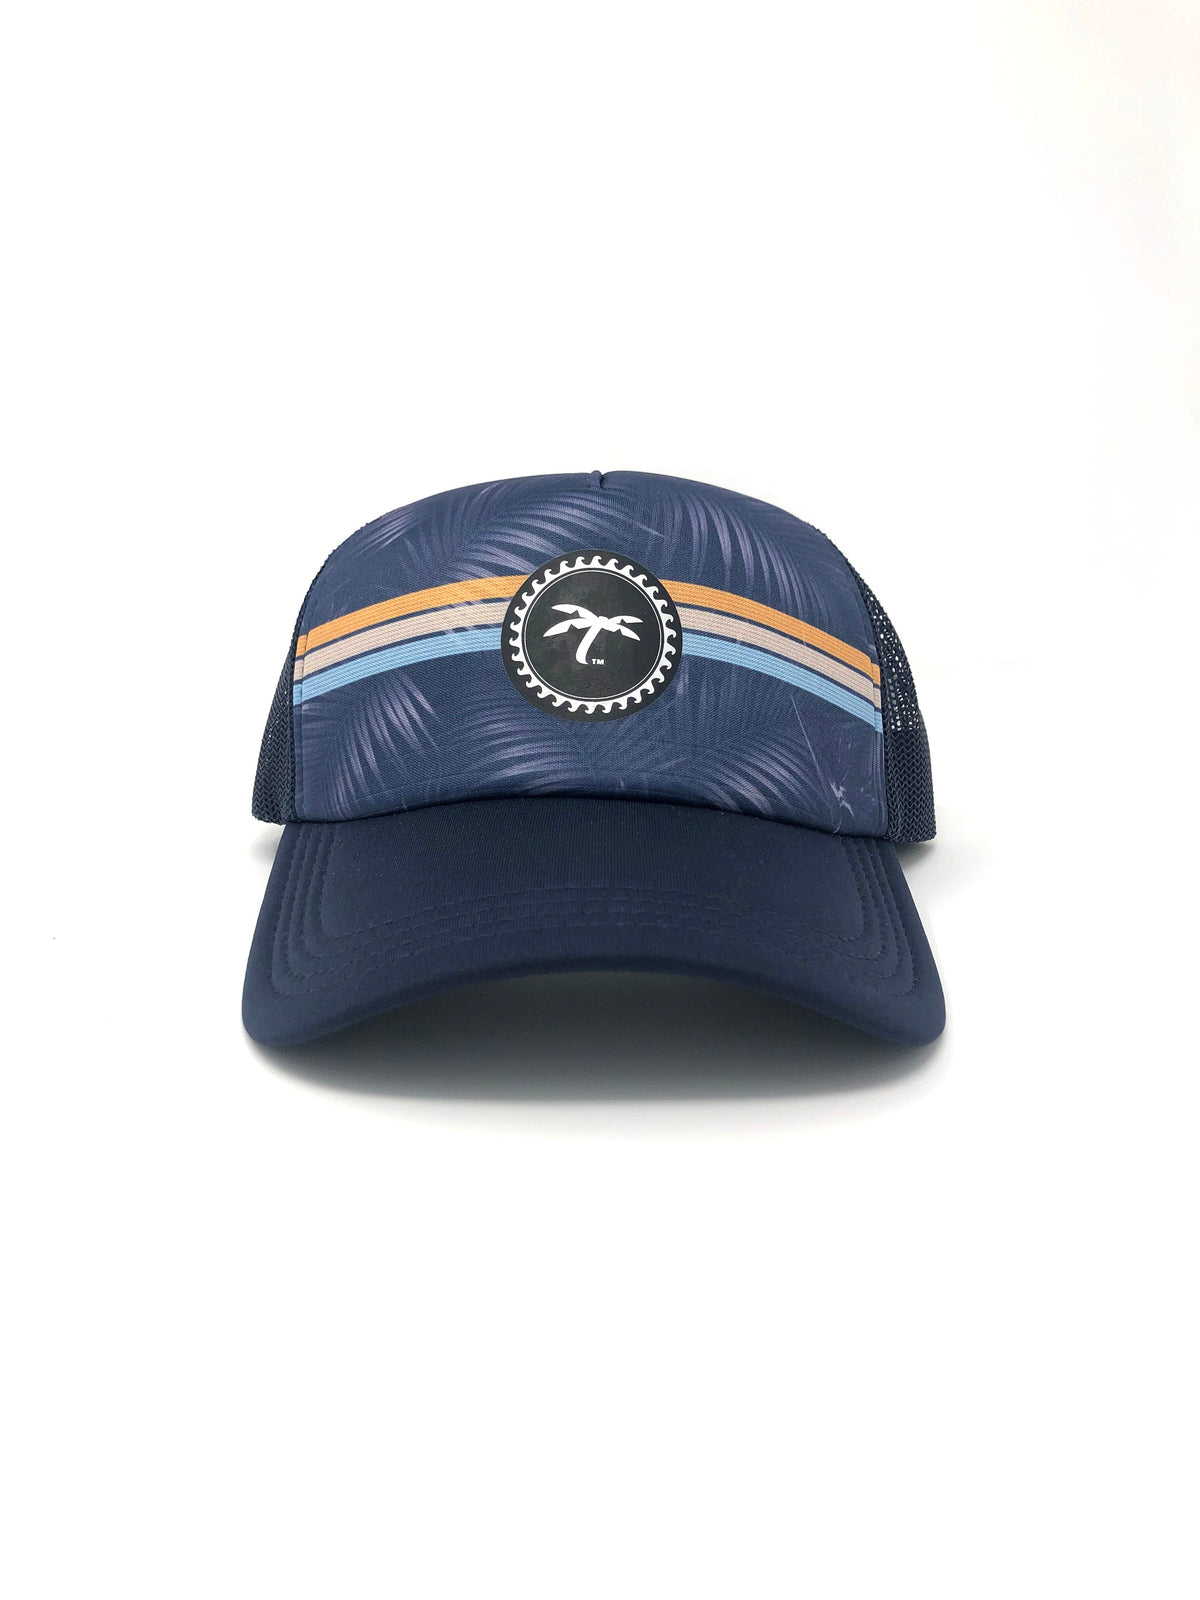 Trucker stripes summer